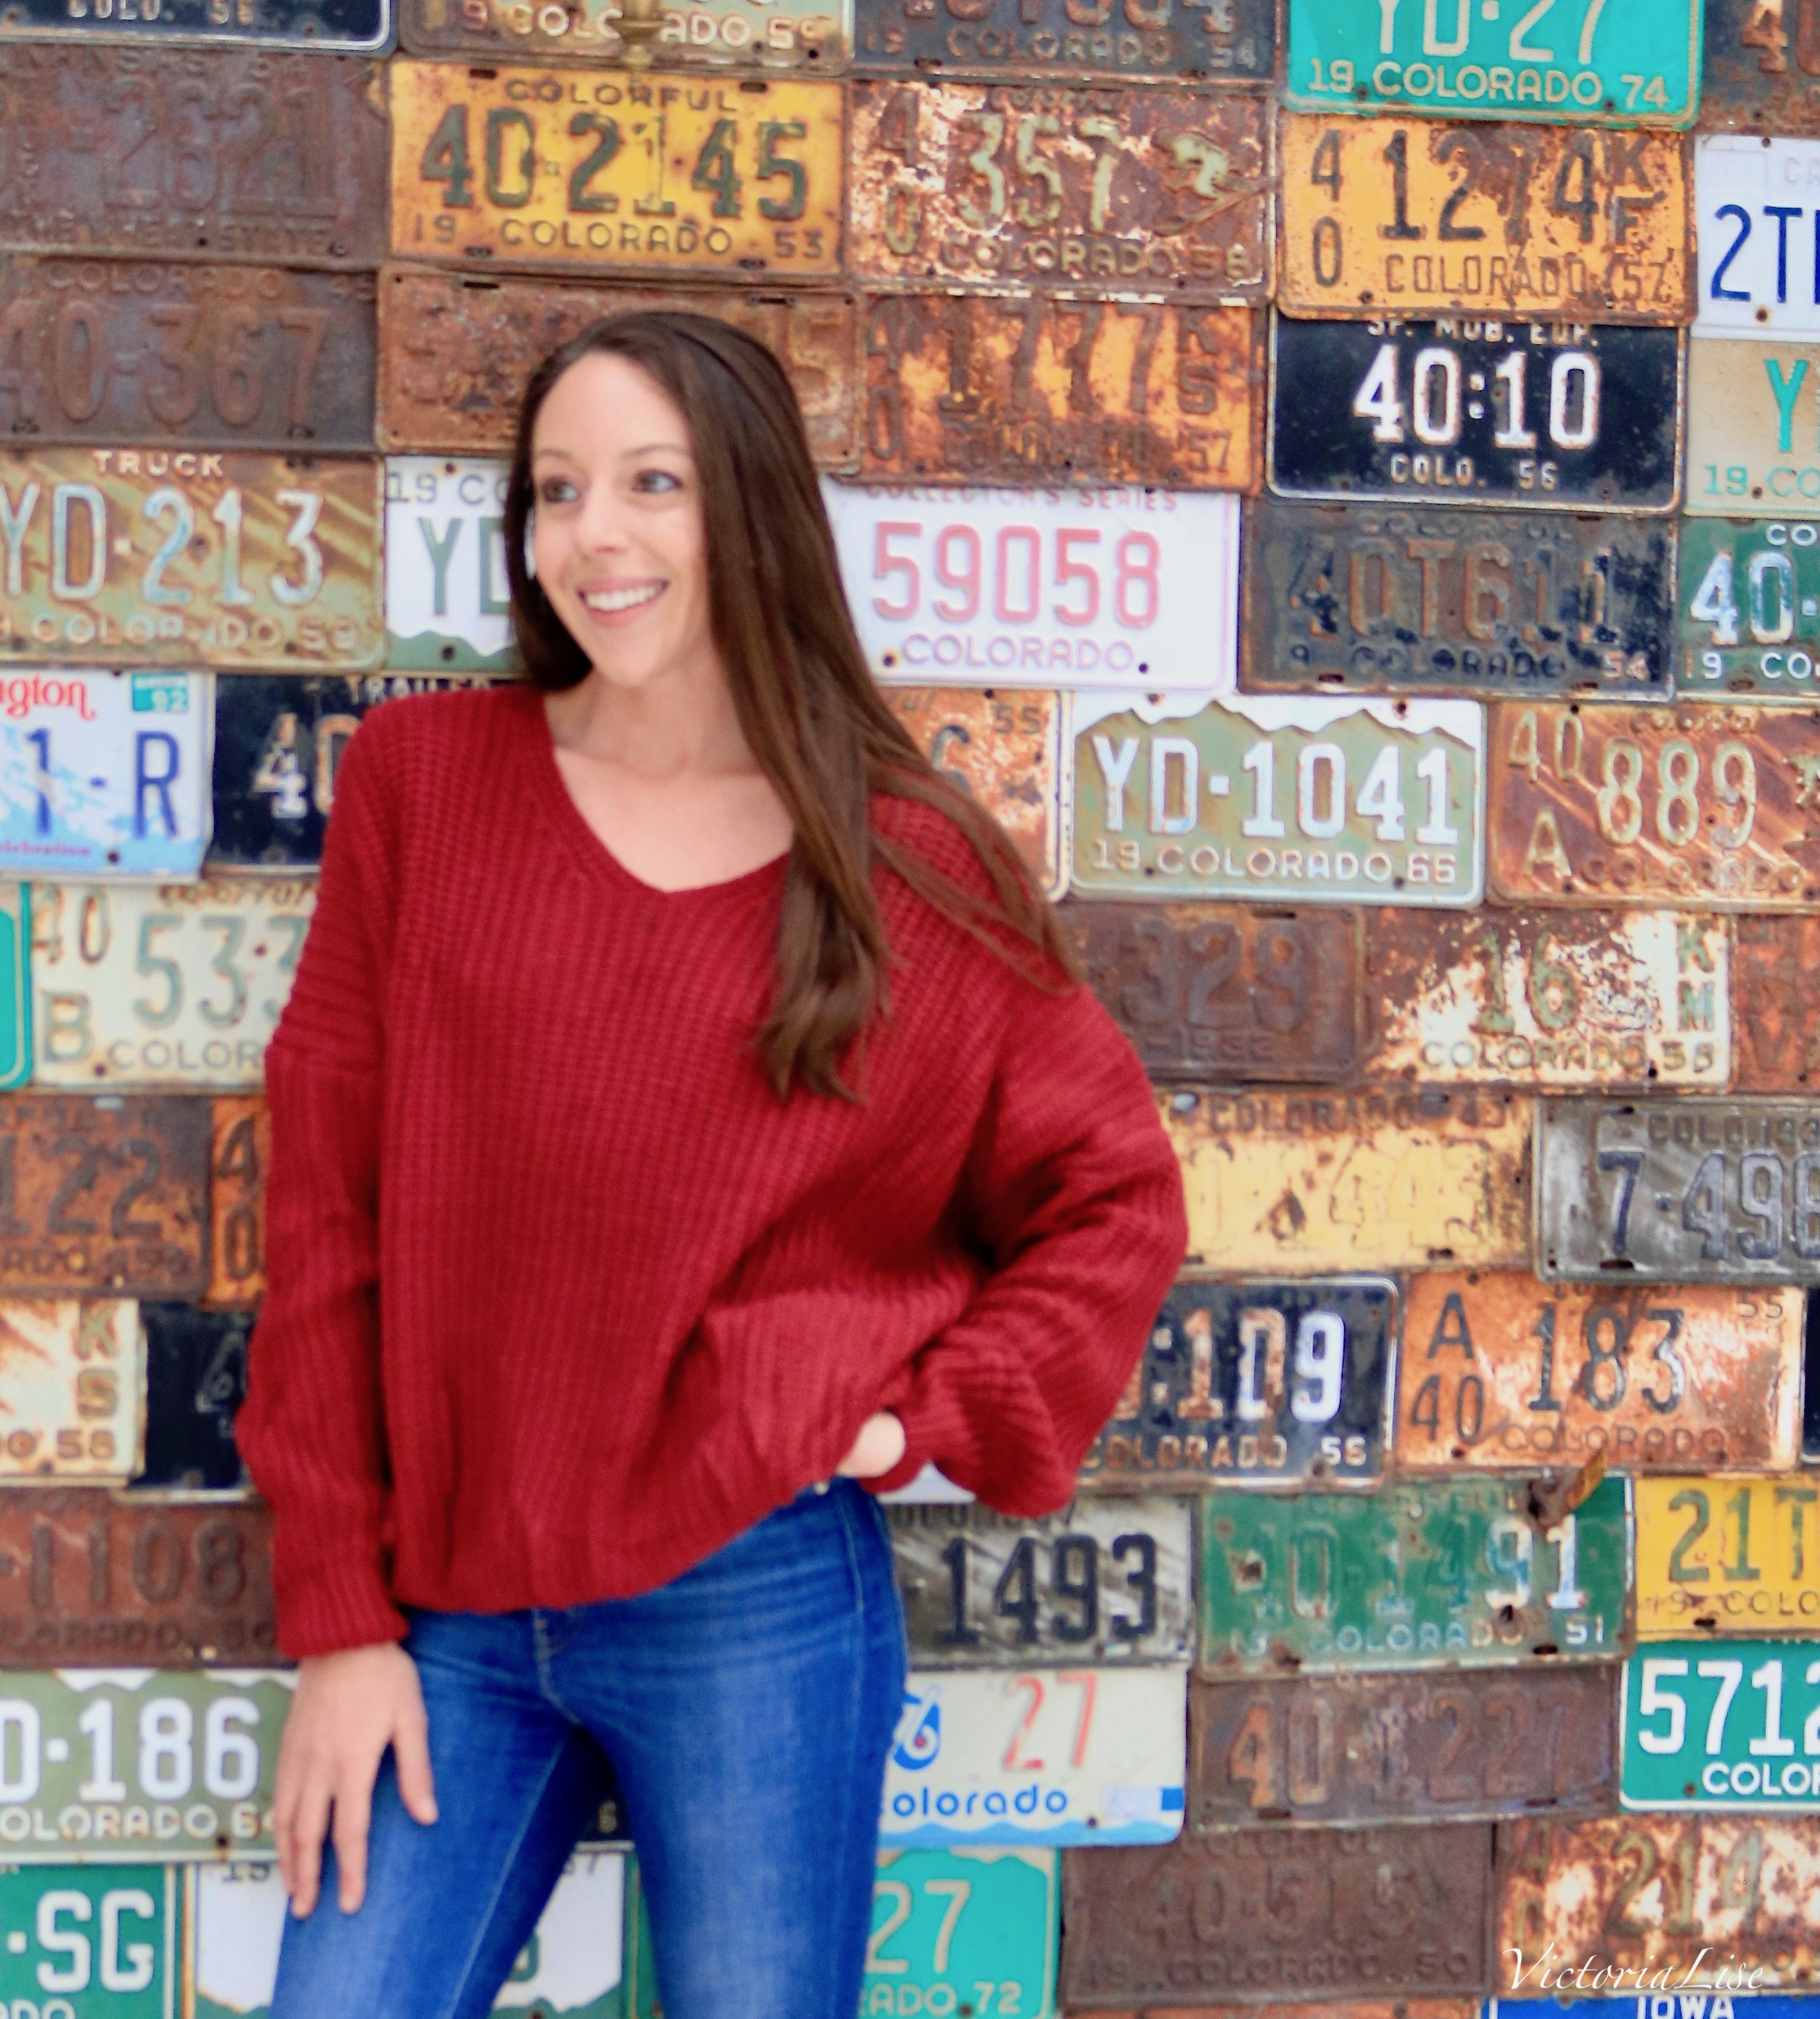 Victoria Lise wears red sweater from Crested Butte Tobacconist in front of iconic Crested Butte, CO building.